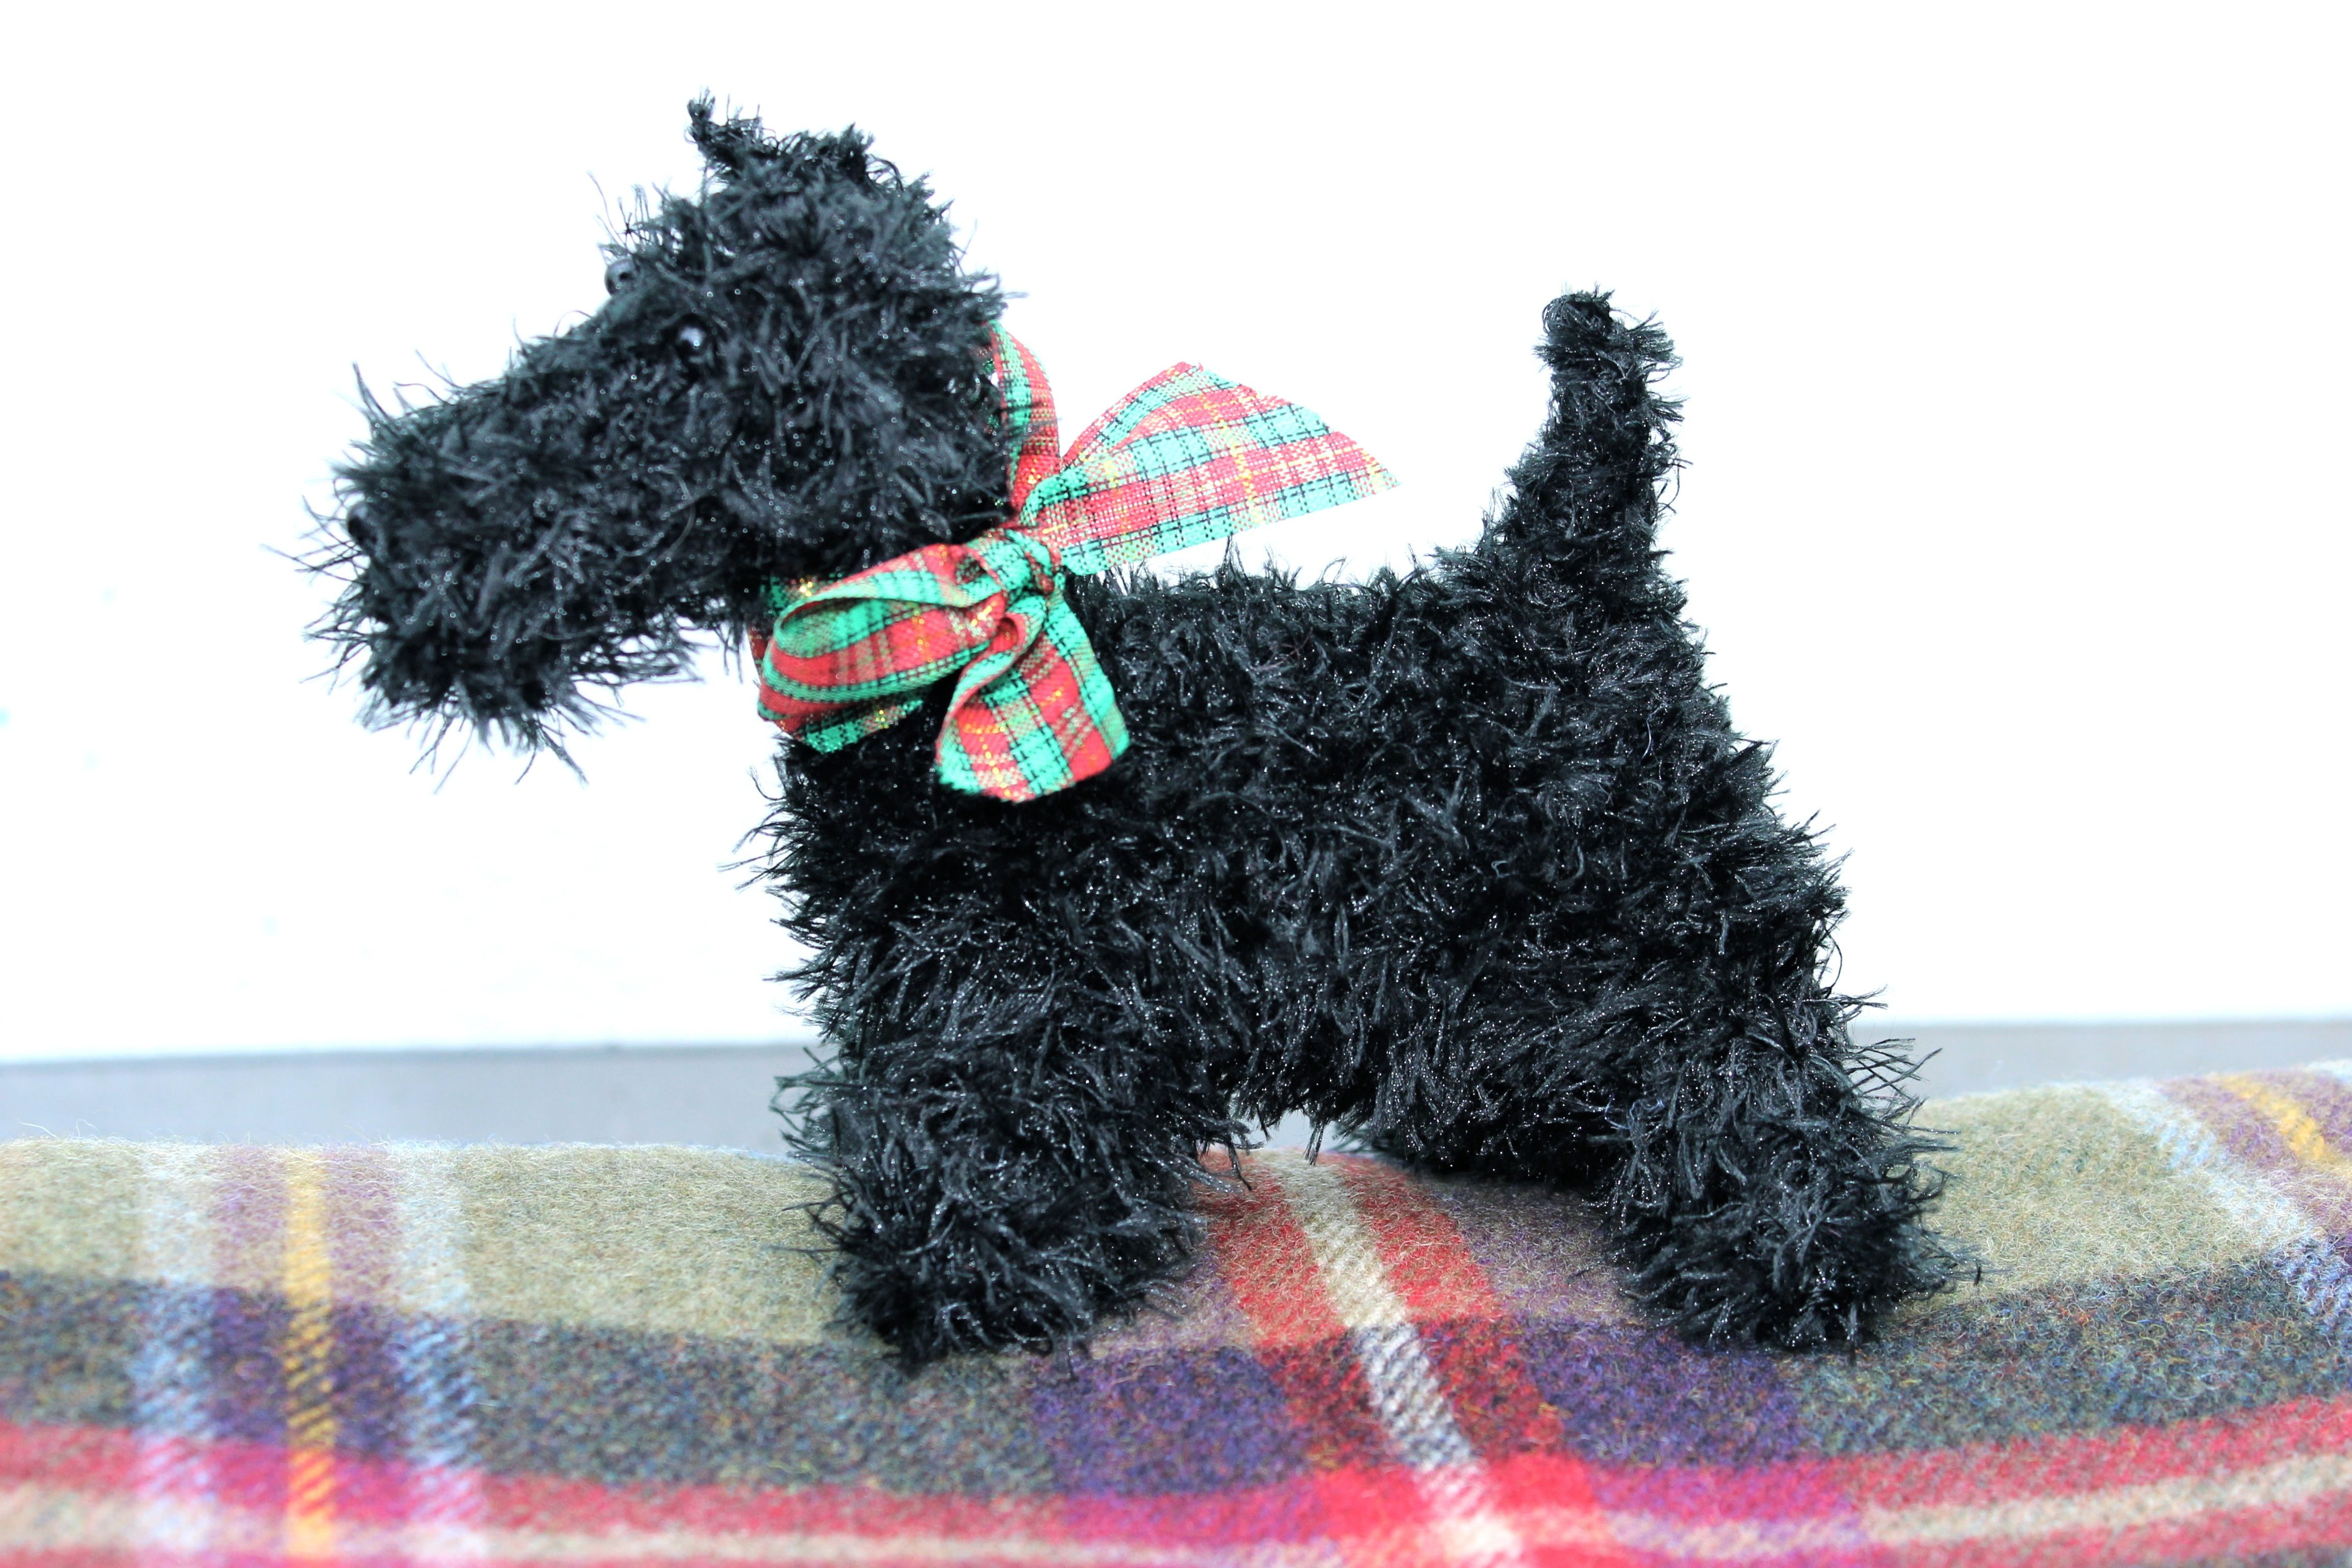 Man's best friend gets the woollen treatment with this adorable knitted scotty dog.